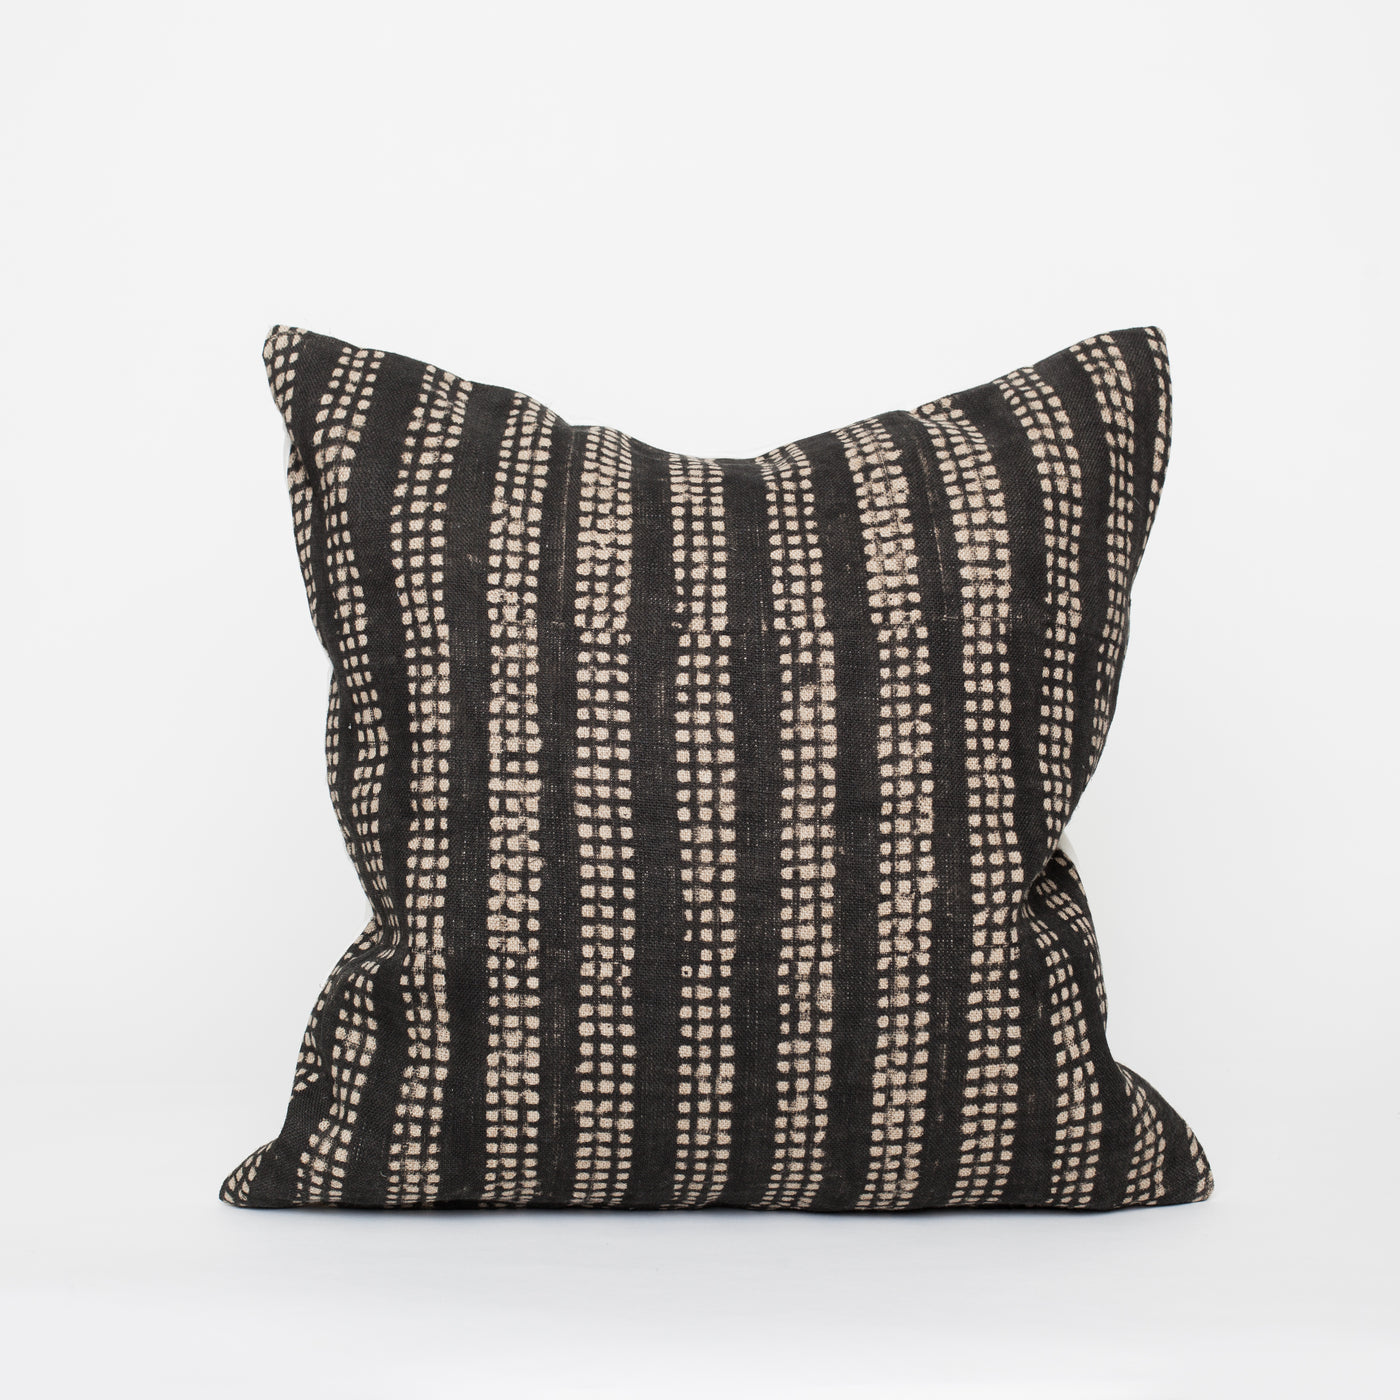 Linen pillow block print black beige HOM & CO home decor